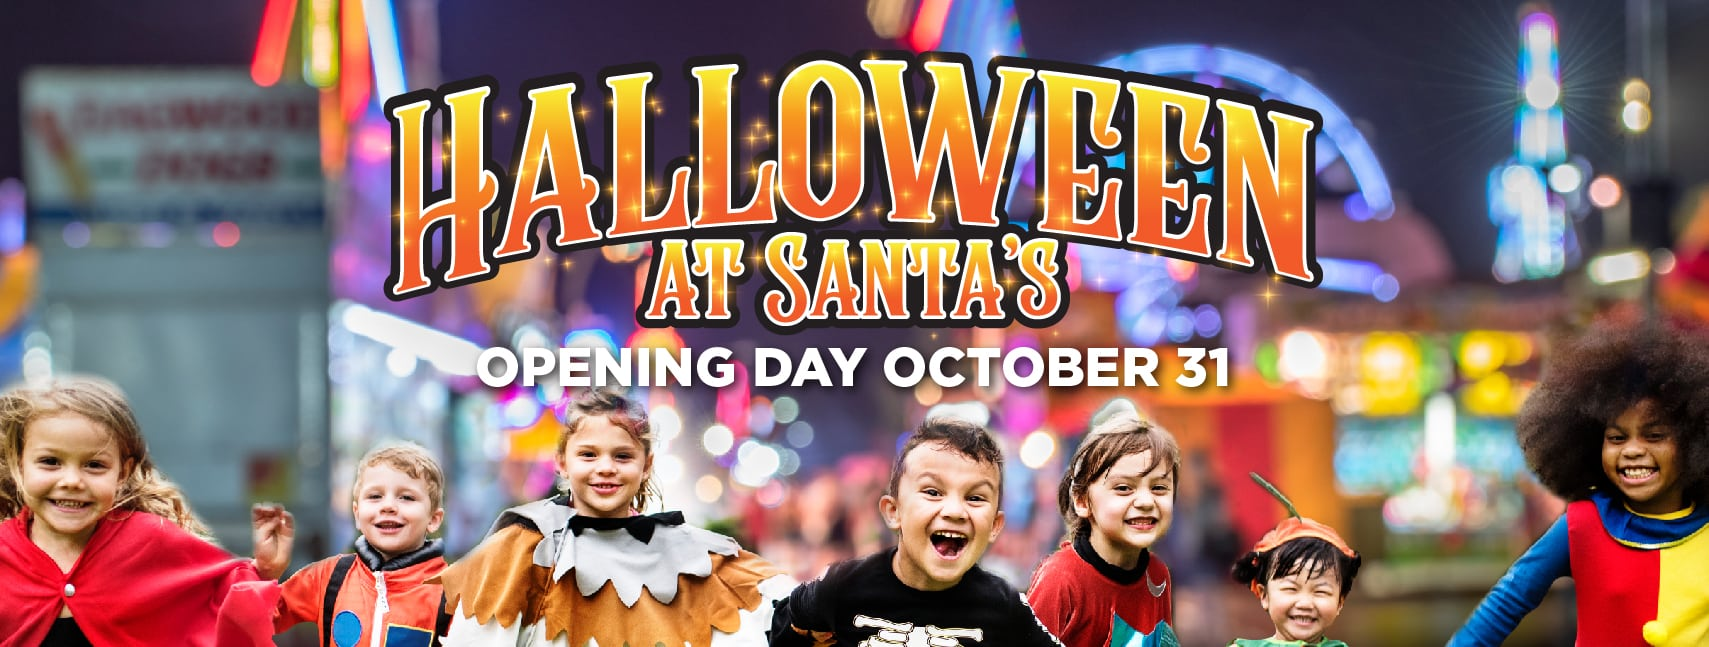 Celebrate Halloween at Santa's!